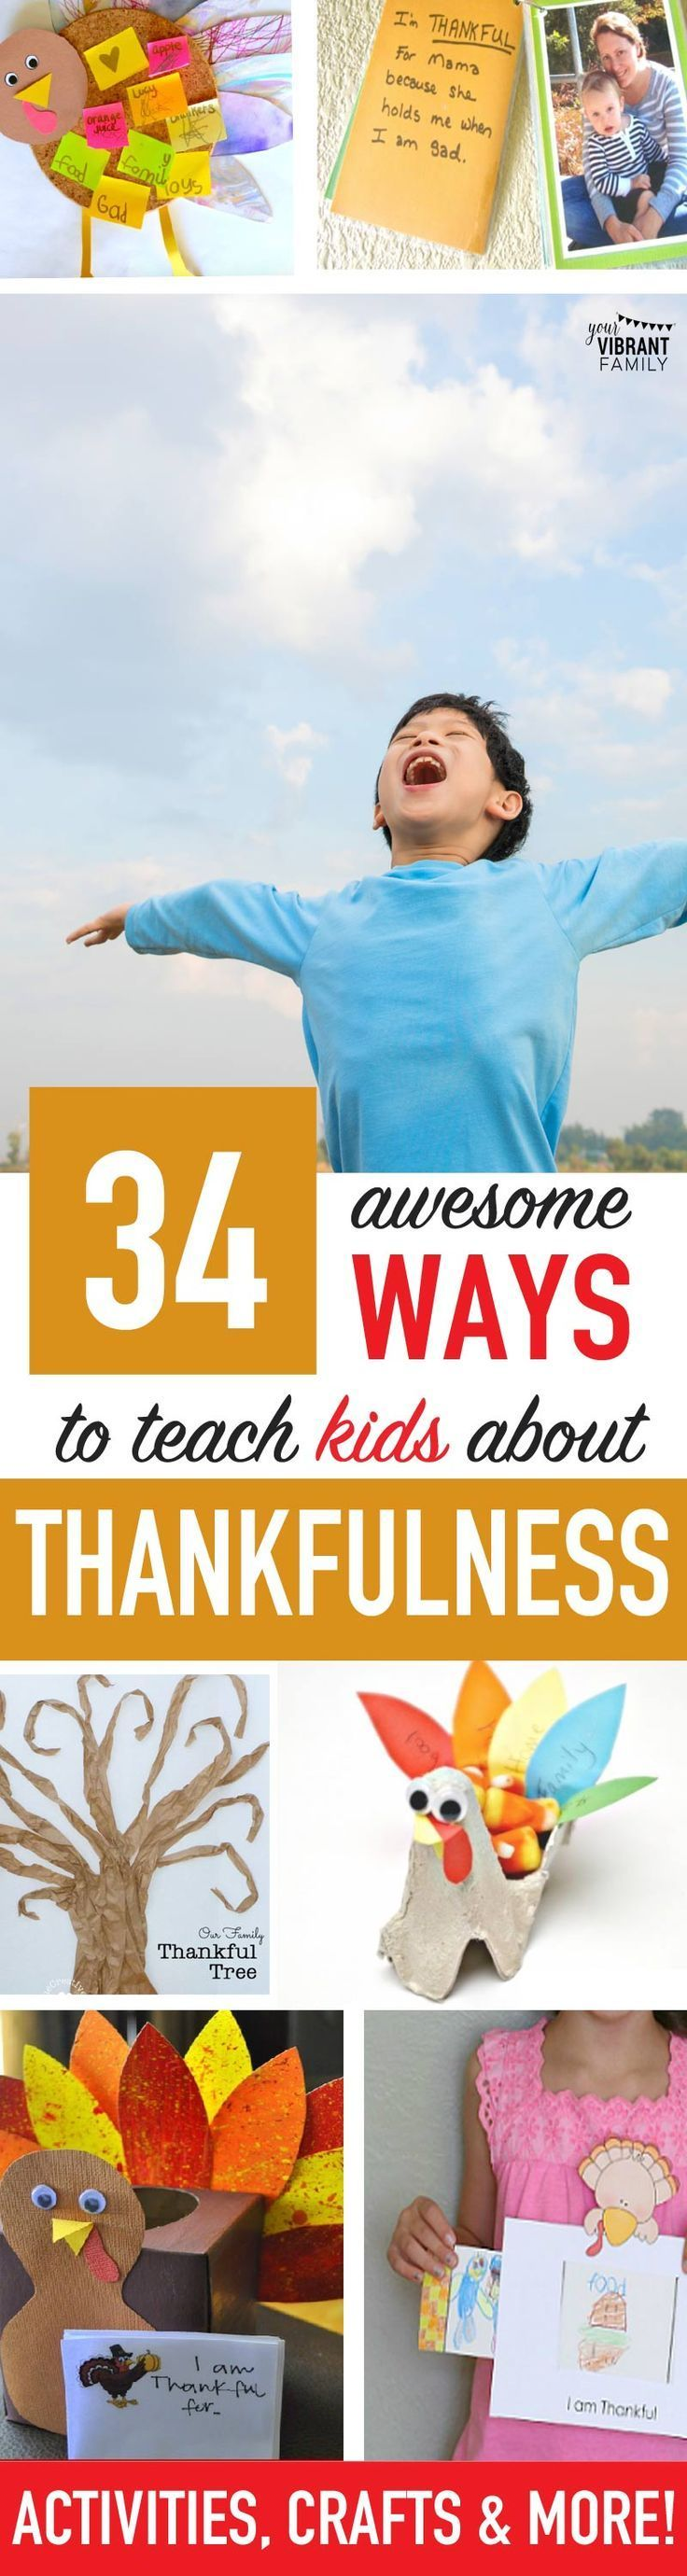 WOW! 34+ Thanksgiving Crafts, Printables, Books and Activities that Teach Kids About Being Thankful! So many GREAT IDEAS here! #thanksgivingcrafts #thanksgivingideas #thankfulnessideas #givethanks #thanks #thanksgiving